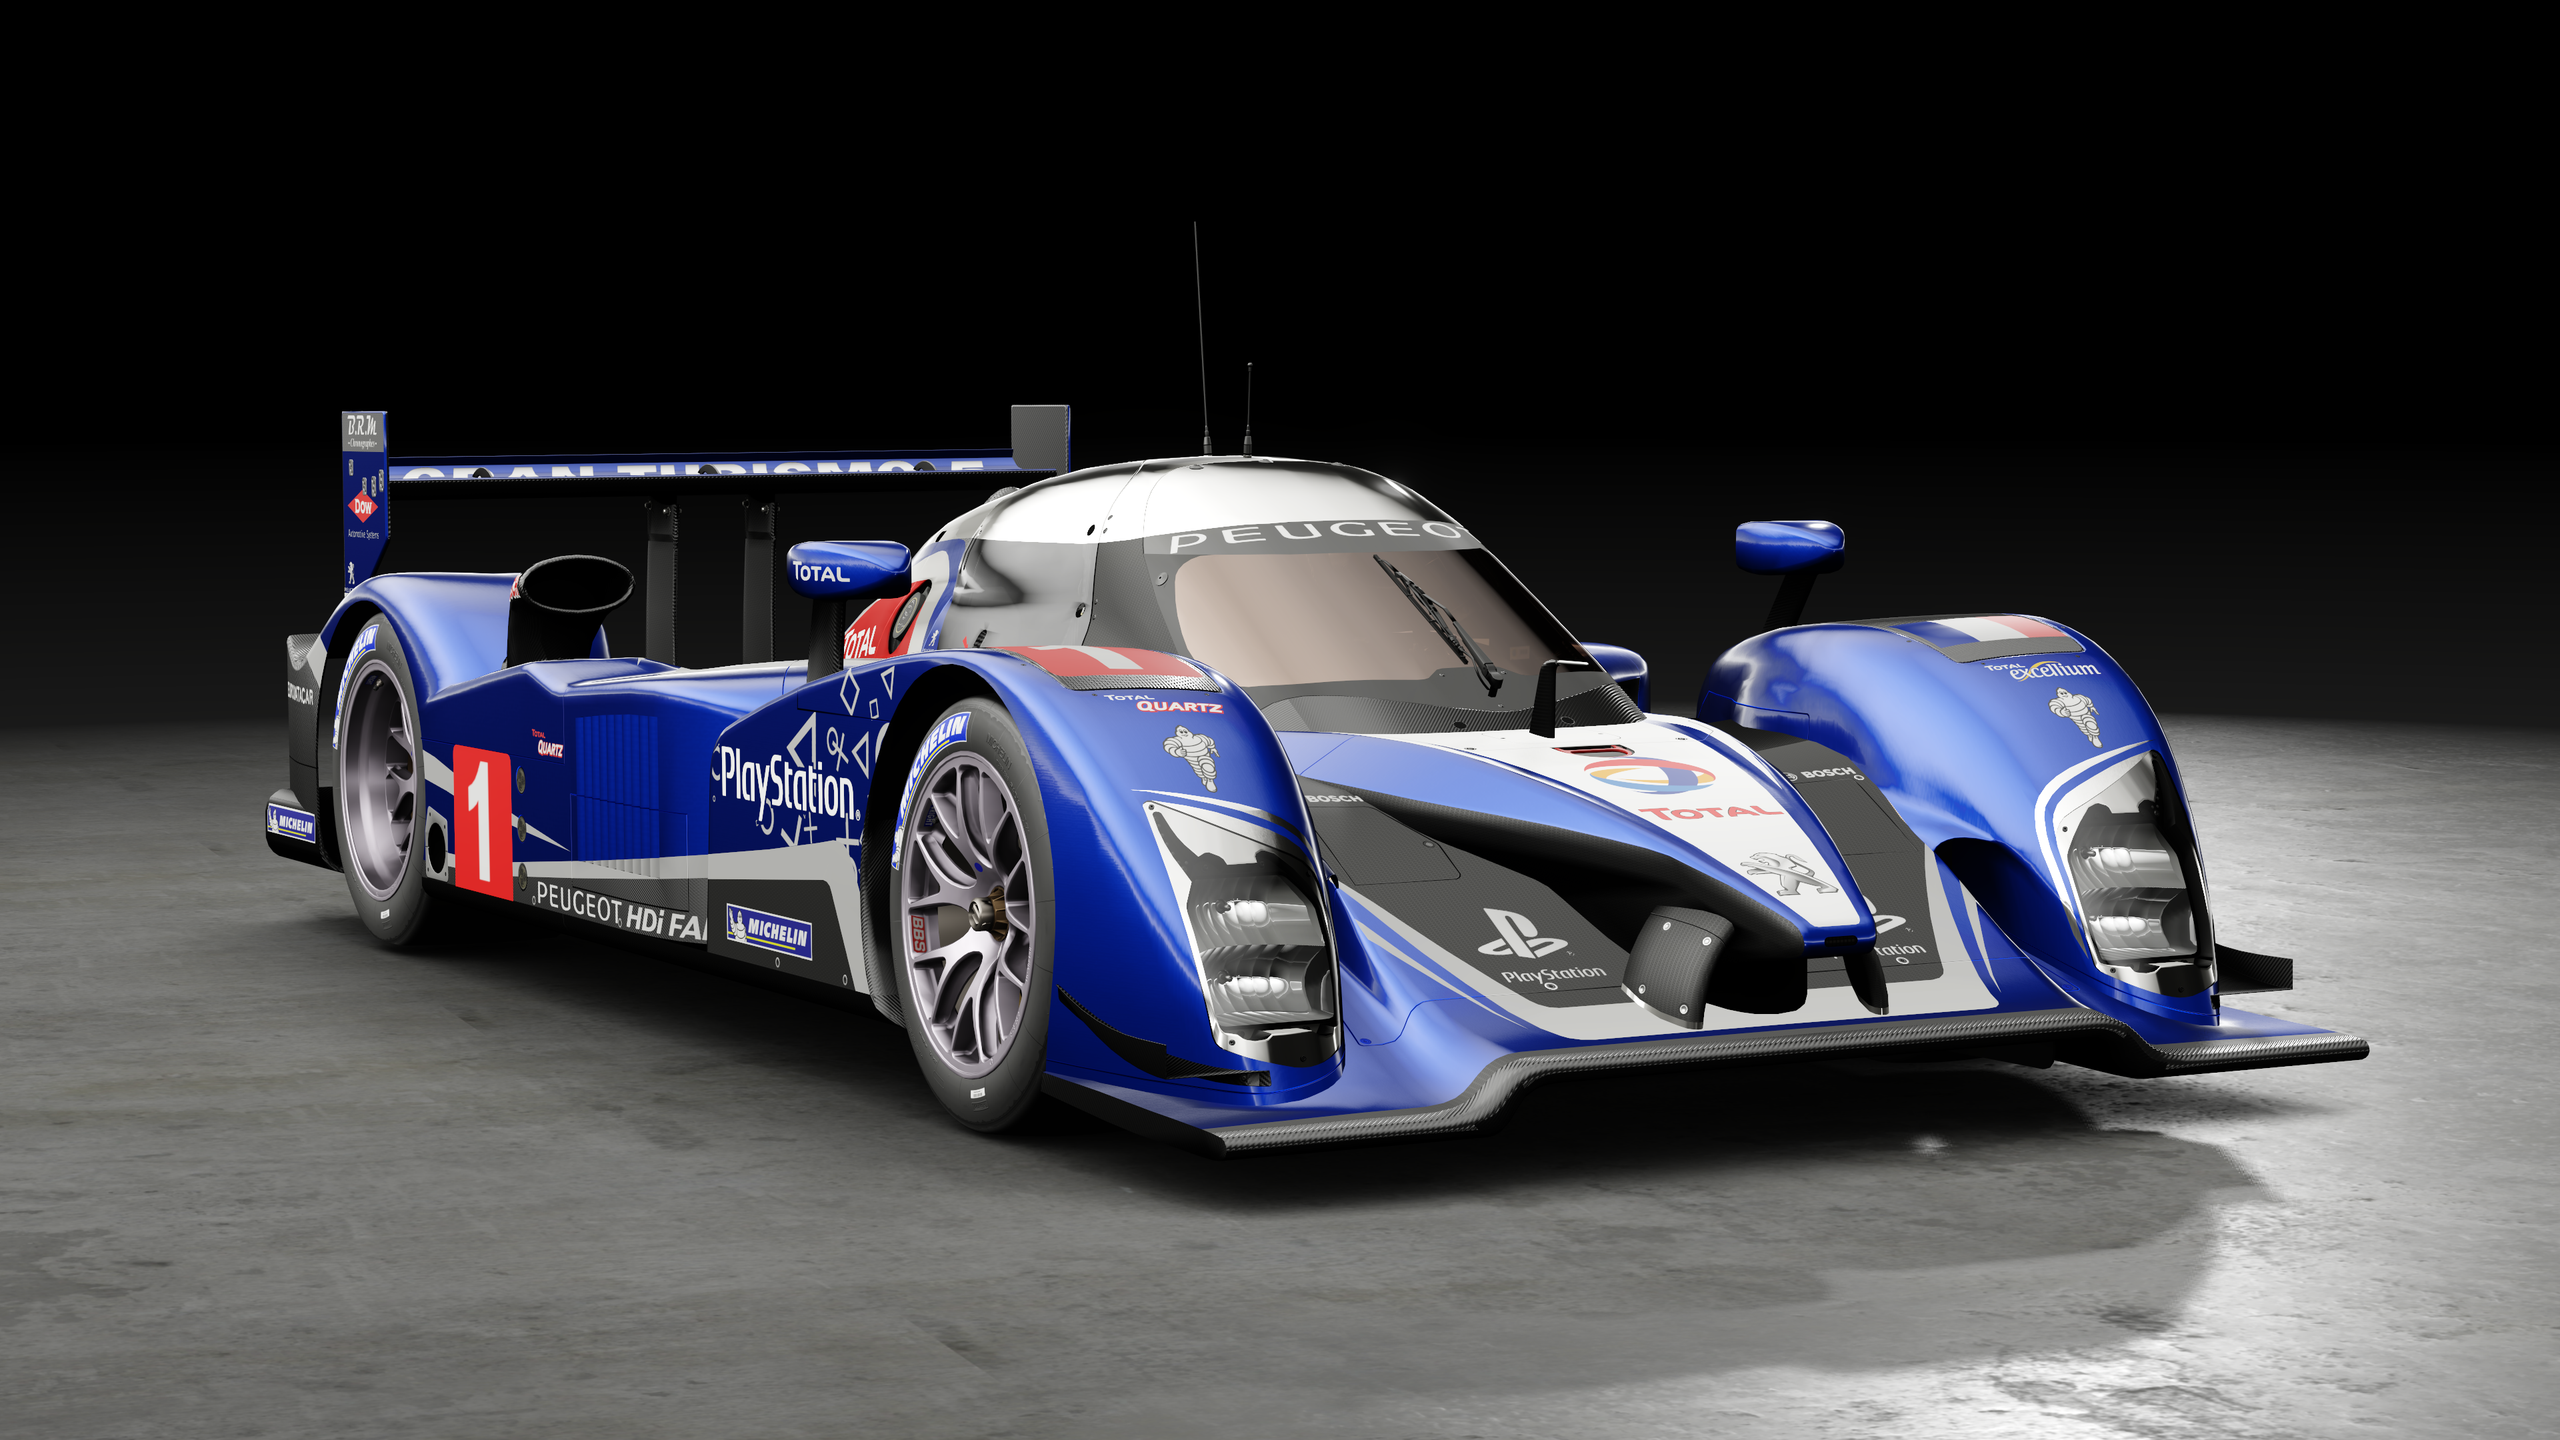 gt sport peugeot 908 hdi fap lmp1 game preorders. Black Bedroom Furniture Sets. Home Design Ideas